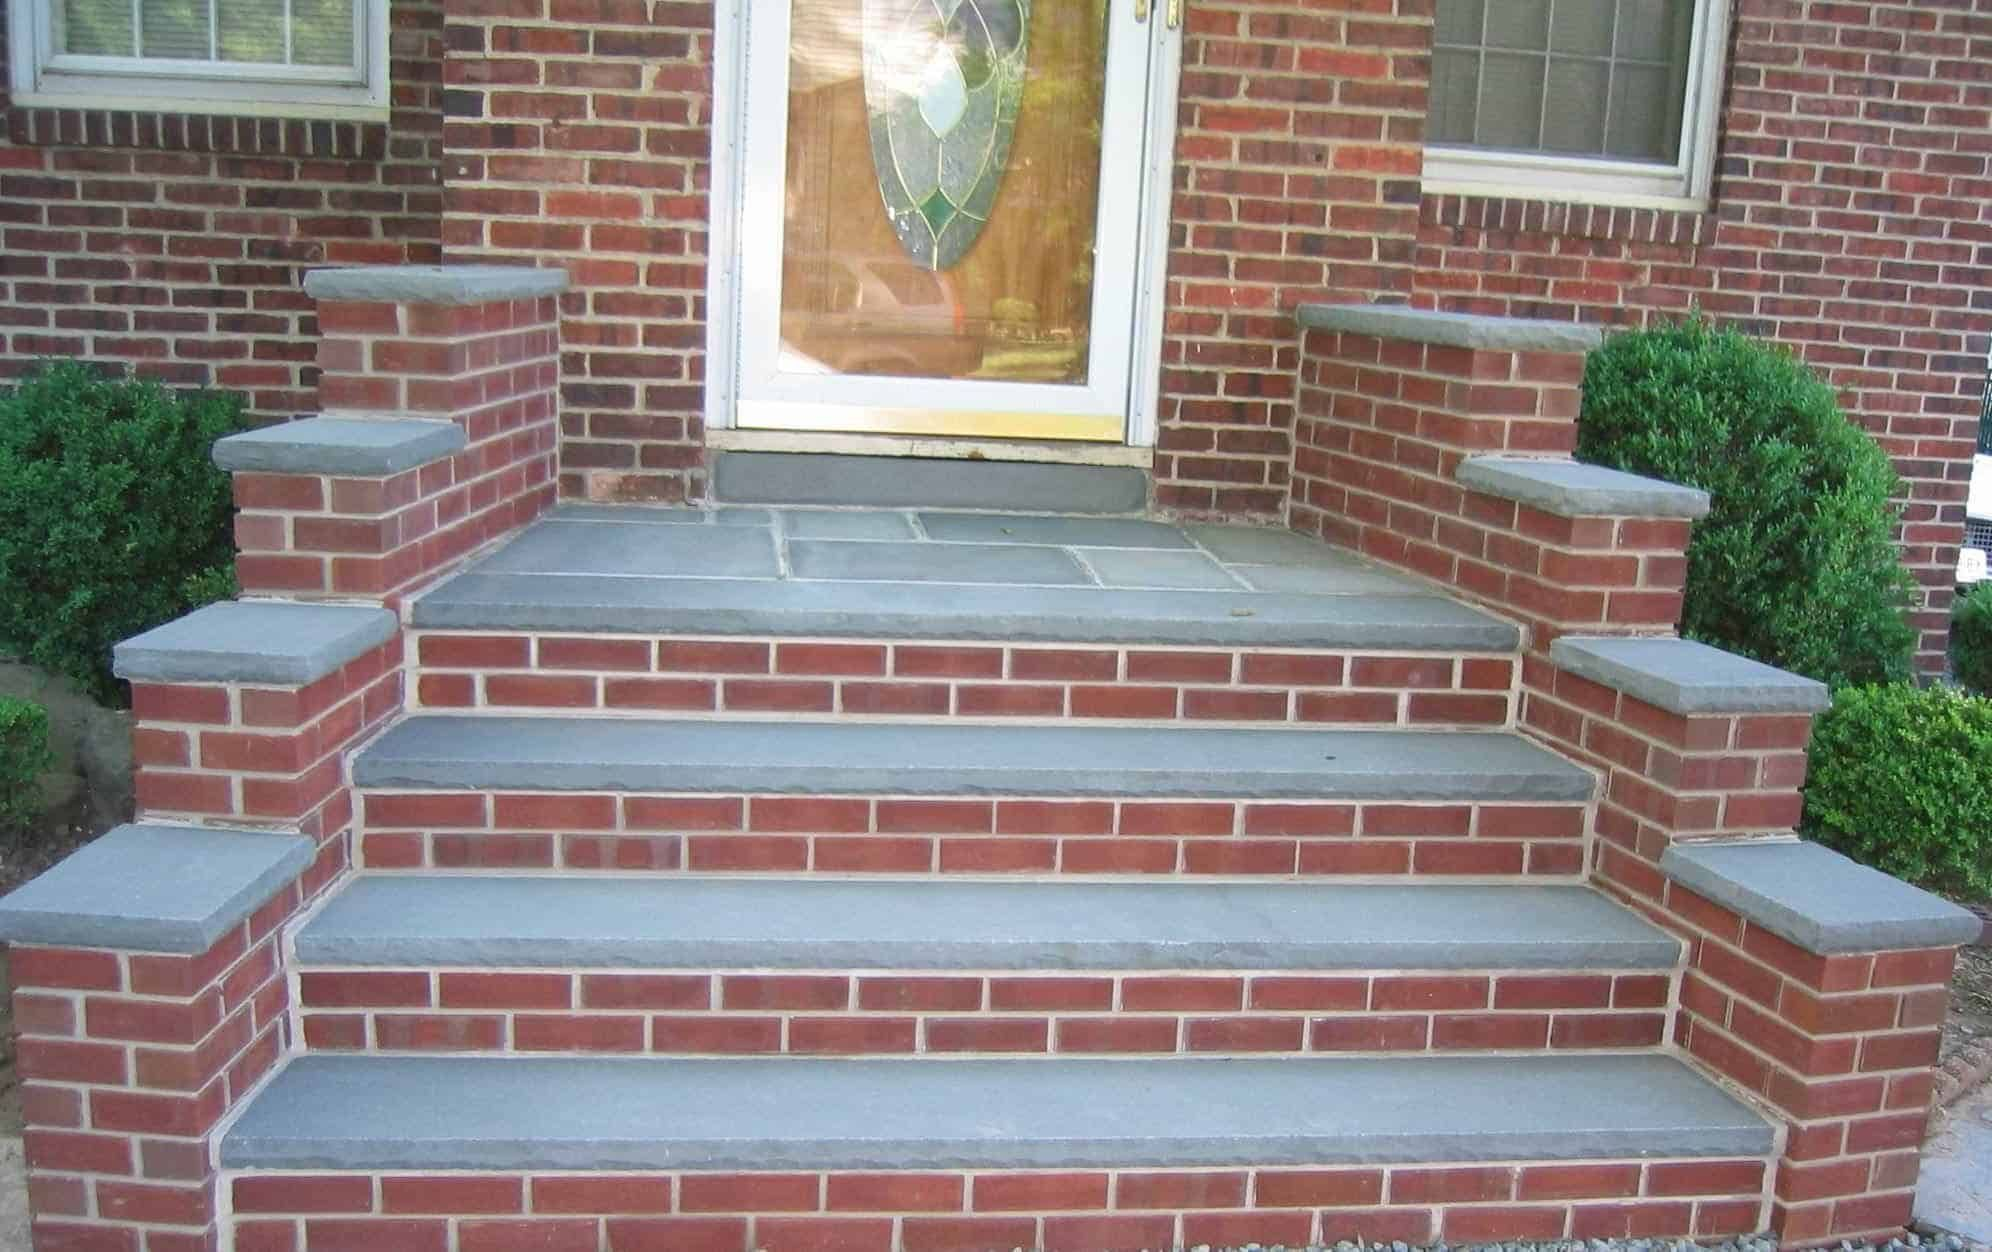 Good Brick Steps Design Front Porch Steps Brick Steps Porch Steps | Brick Front Step Designs | Patio | Entry | Front Entrance Front Porch Wall Tile | Raised Front | Bluestone Treads 24 Inch Rise